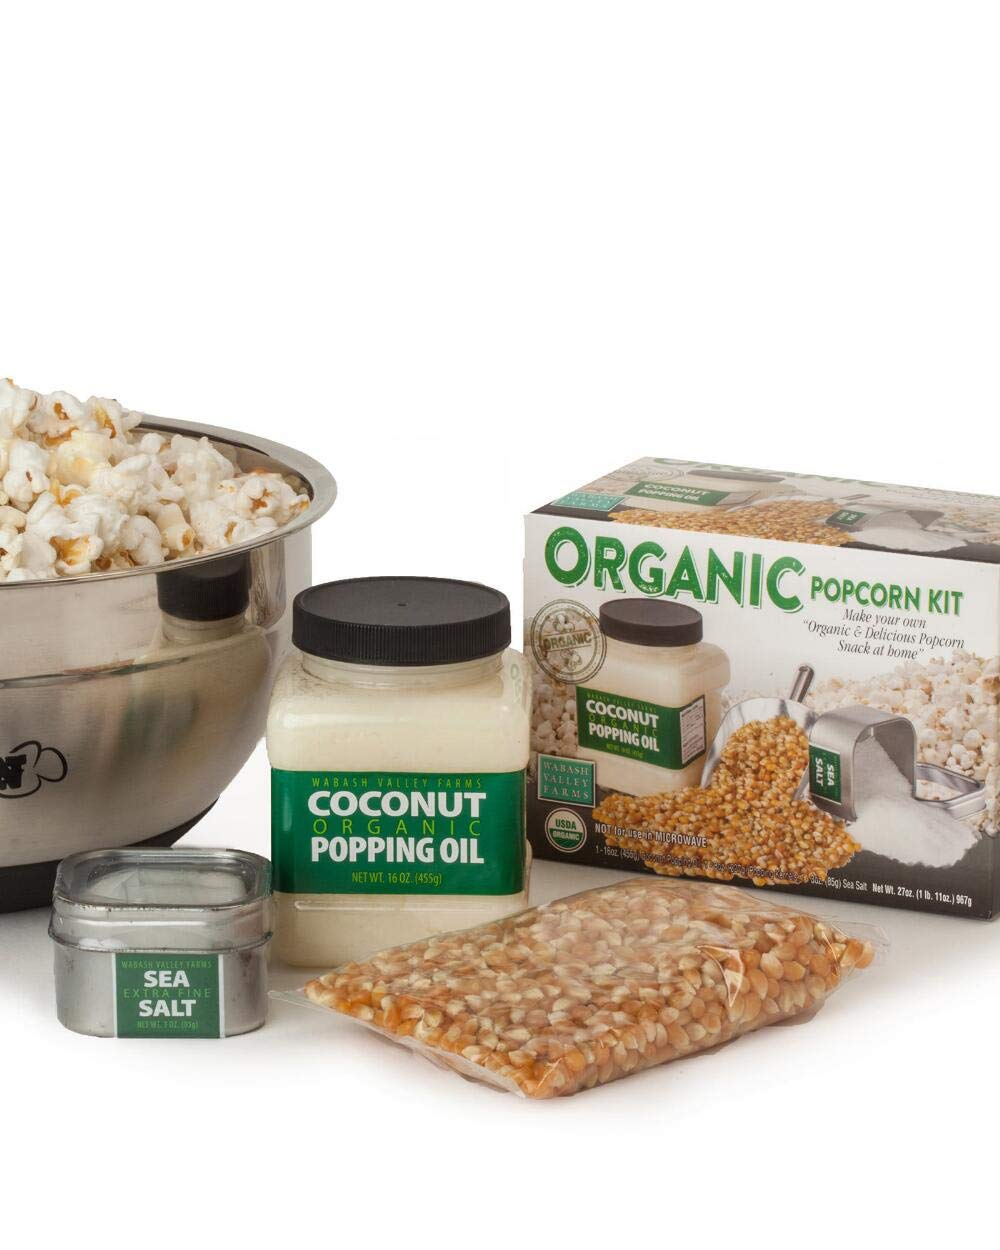 Organic Popping Set and Stainless Steel Bowl! Serving Bowl, Organic Coconut Oil, Organic Yellow Kernels And Fine Sea Salt! Non-Gmo, Gluten Free & 100% Whole Grain! Tasty Delicious Healthy Snack! by WVF (Image #1)